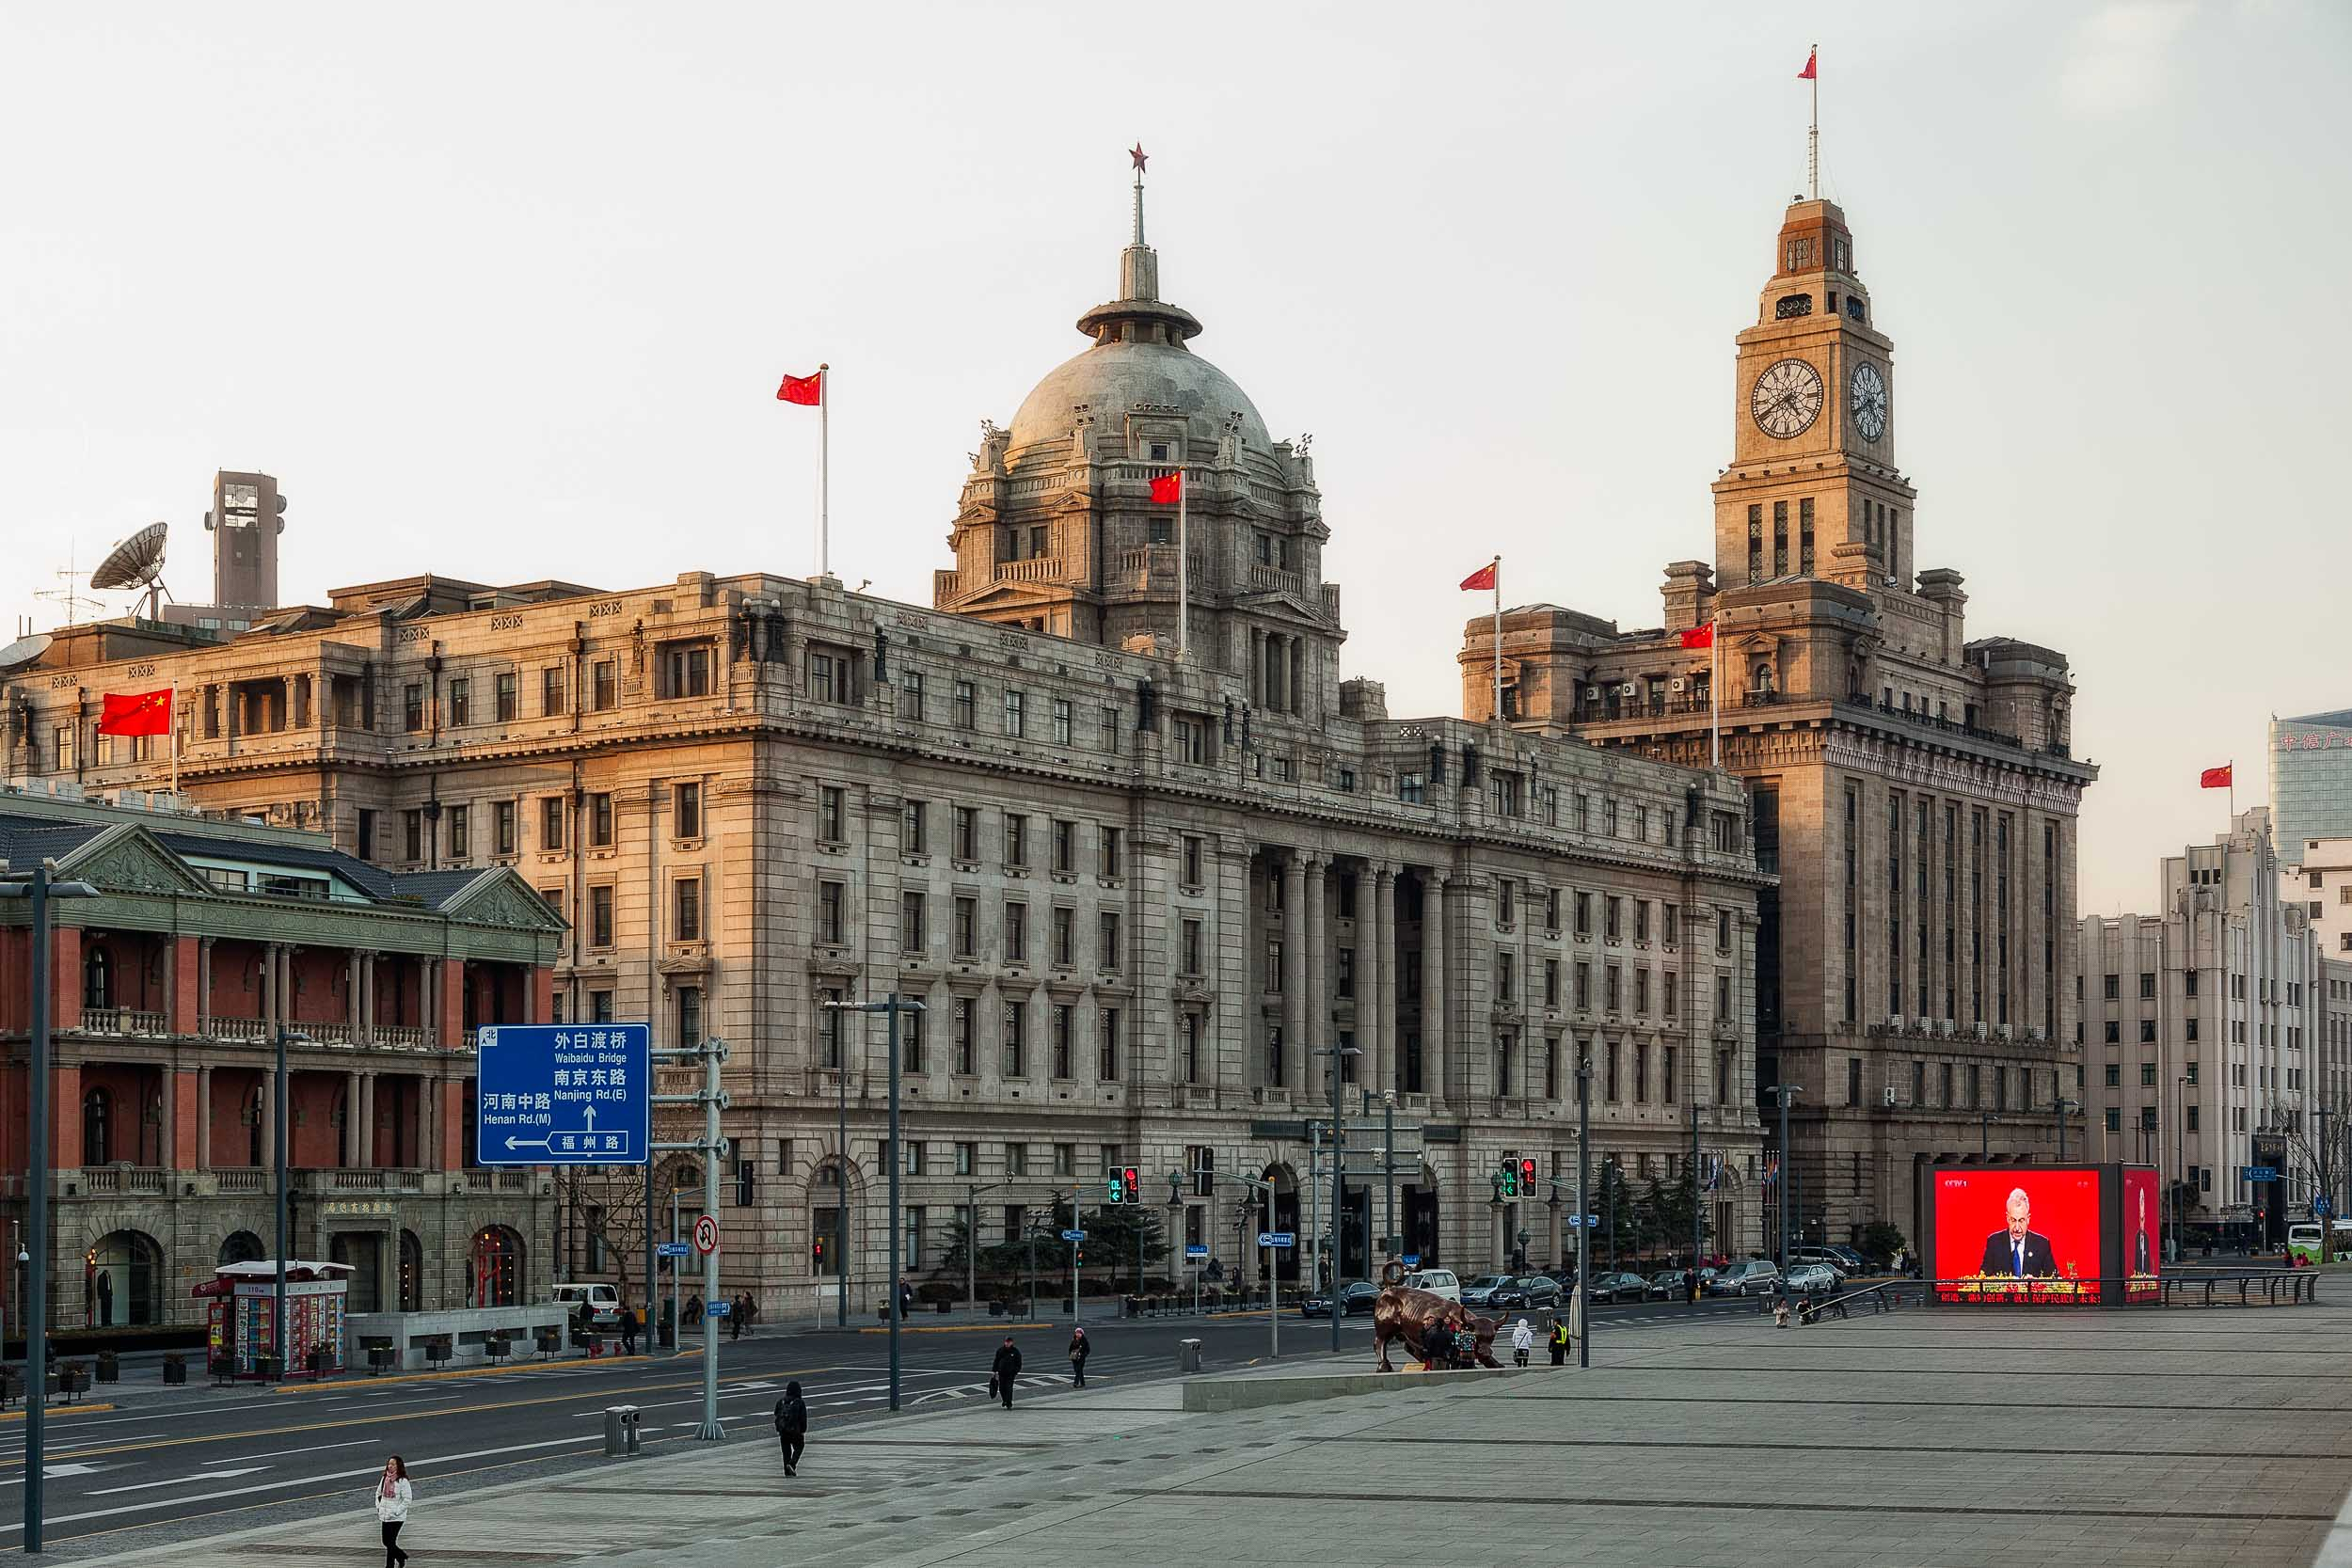 A view of    The Bund    near the corner of    Nanjing Road    in    Shanghai, China   .